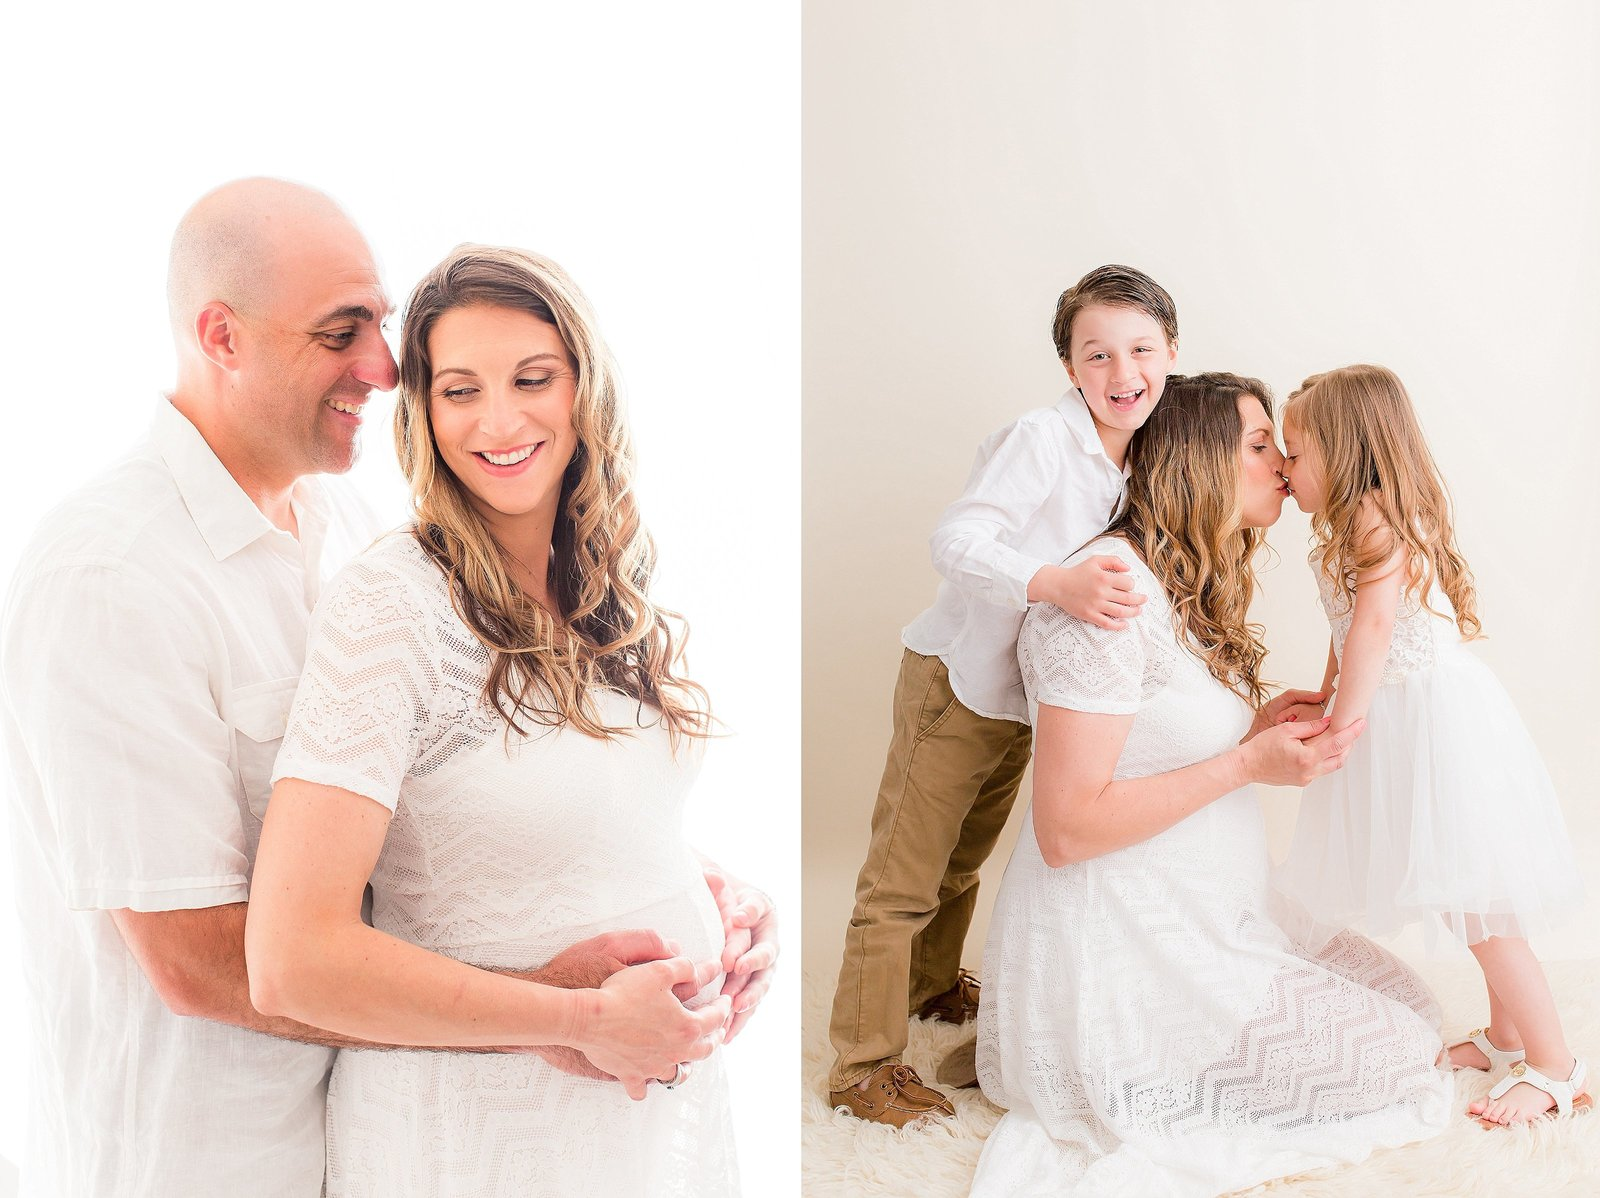 Maternity session with older siblings